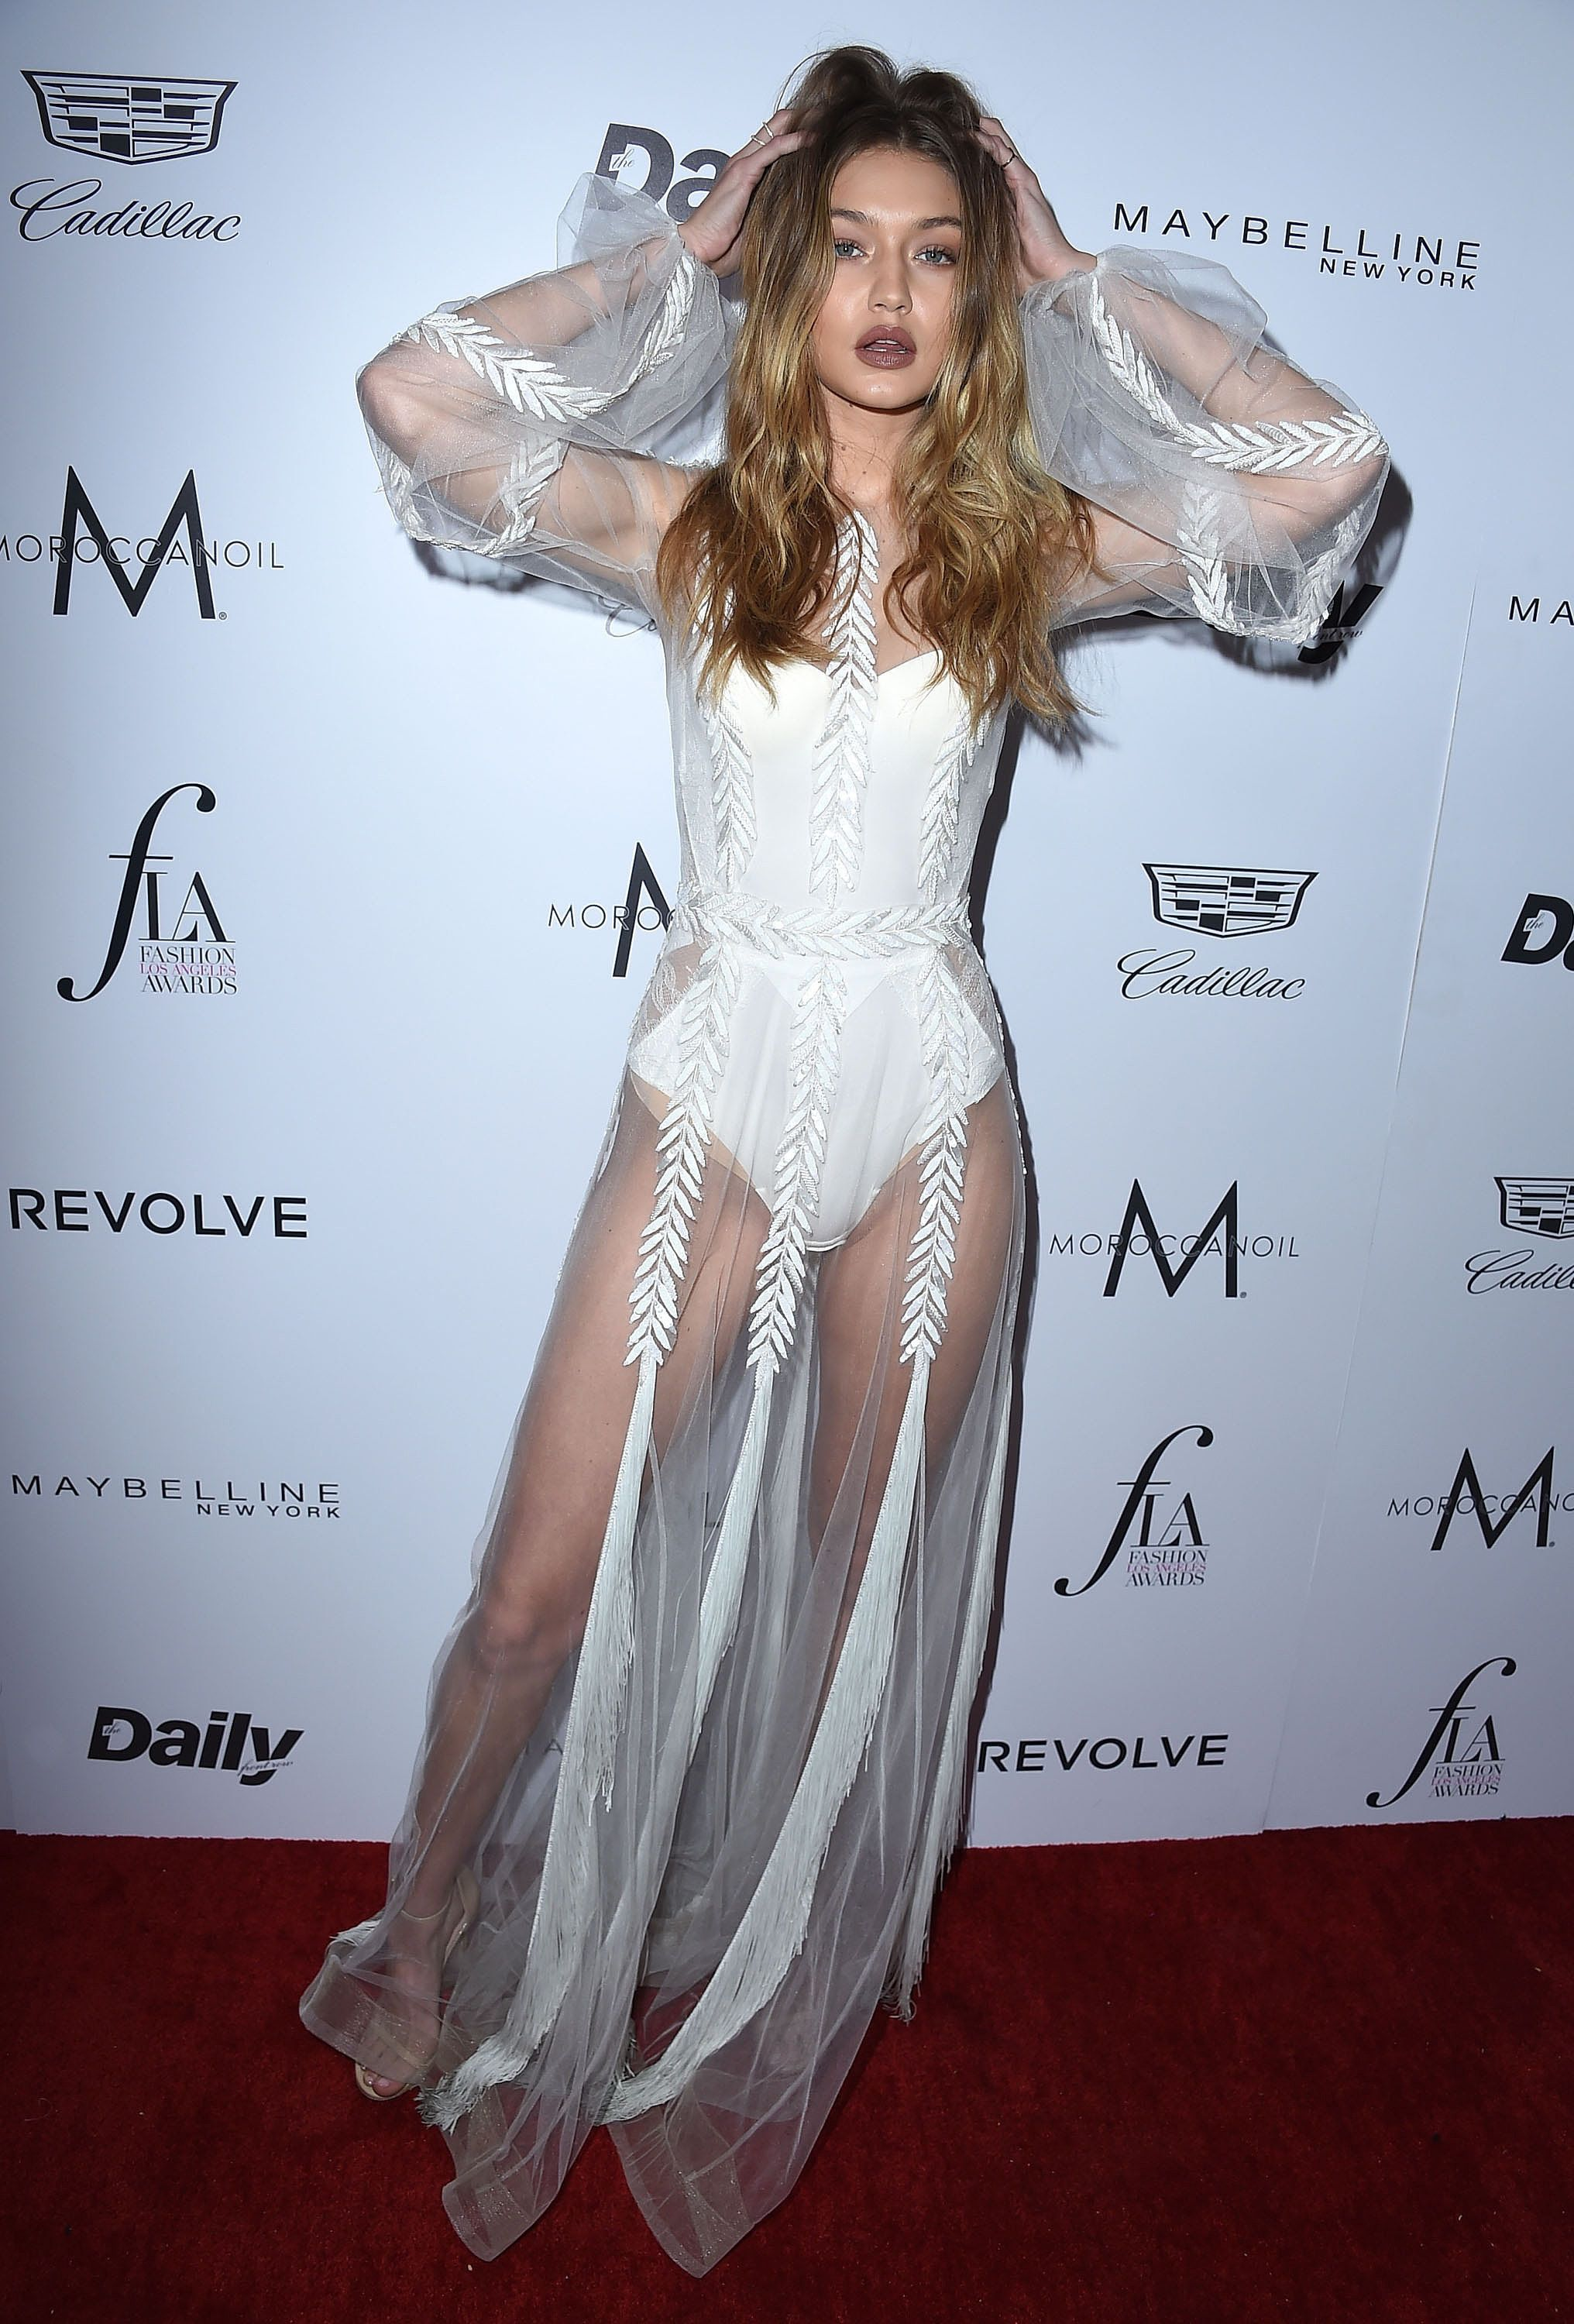 fb3bcc014e84 Gigi Hadid at the 2016 Daily Front Row Awards wearing a white sheer Yanina  Couture dress over a La Perla bodysuit with Stuart Weitzman Nudist Strapy  Heels